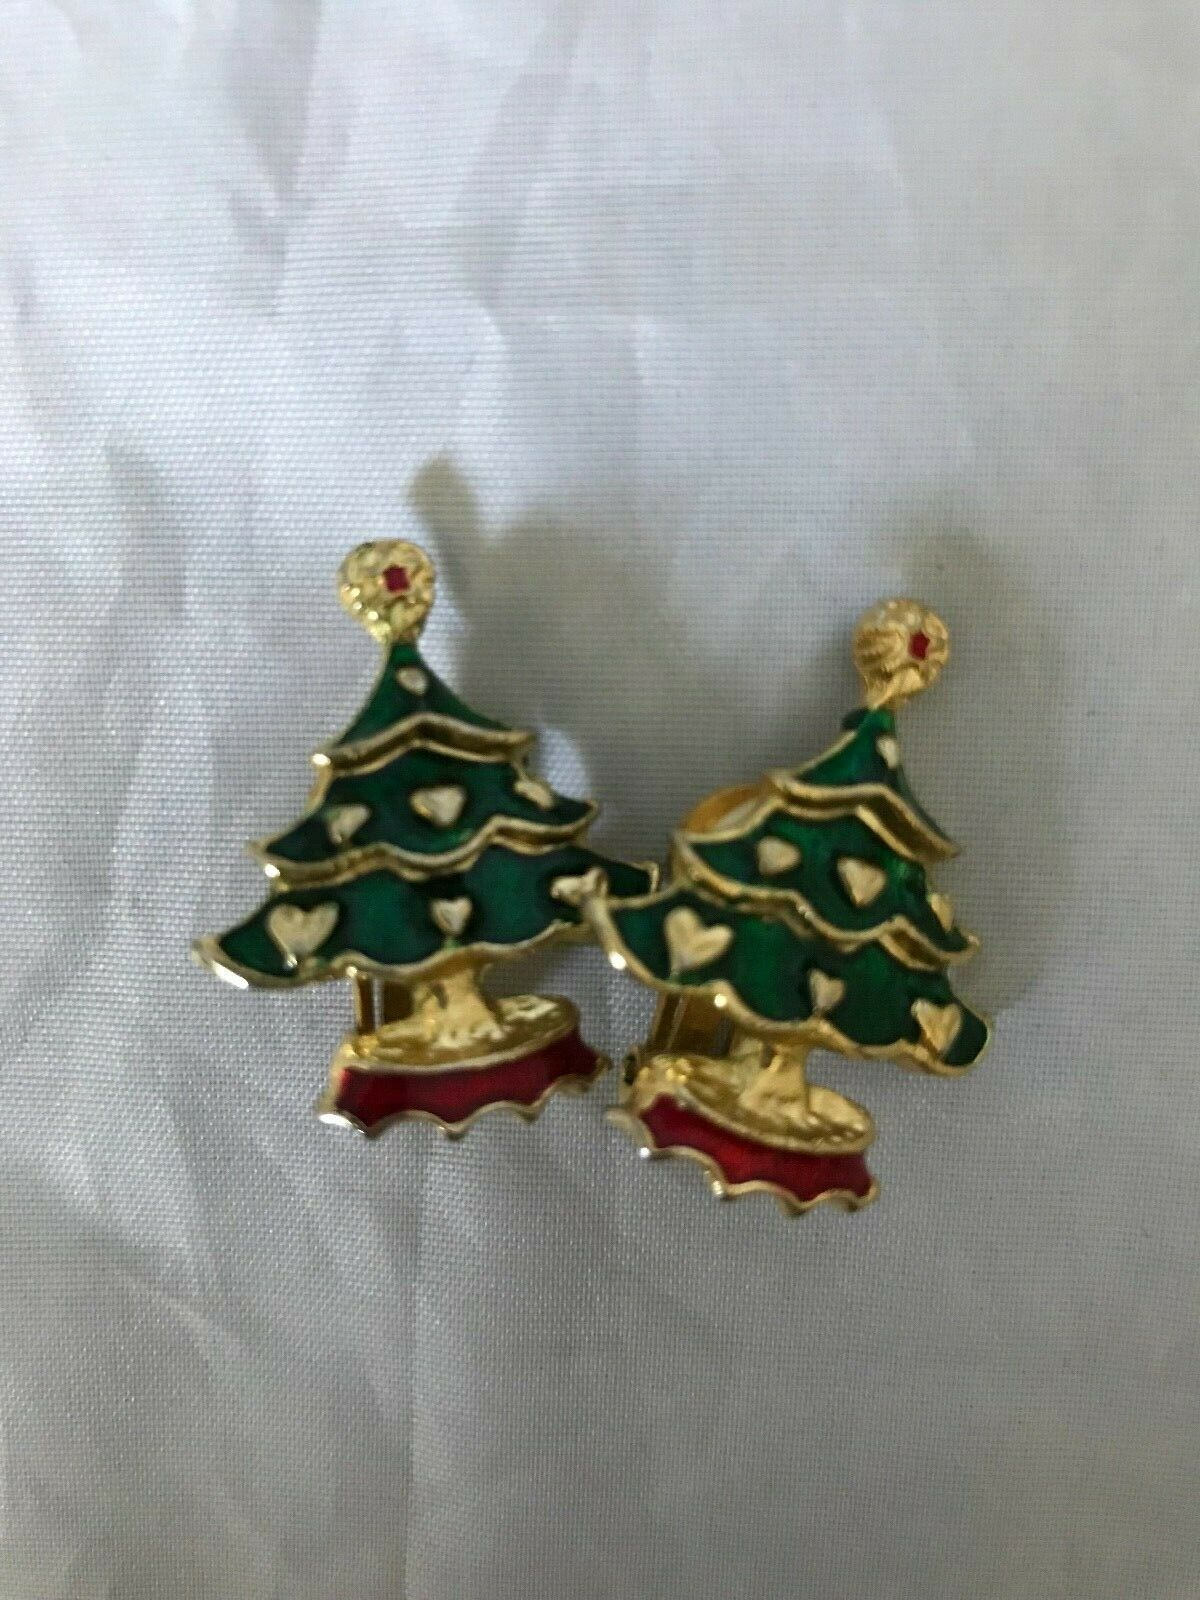 Vintage Hess's Department Store Christmas Tree Broach/Pin and Clip-on Earrings